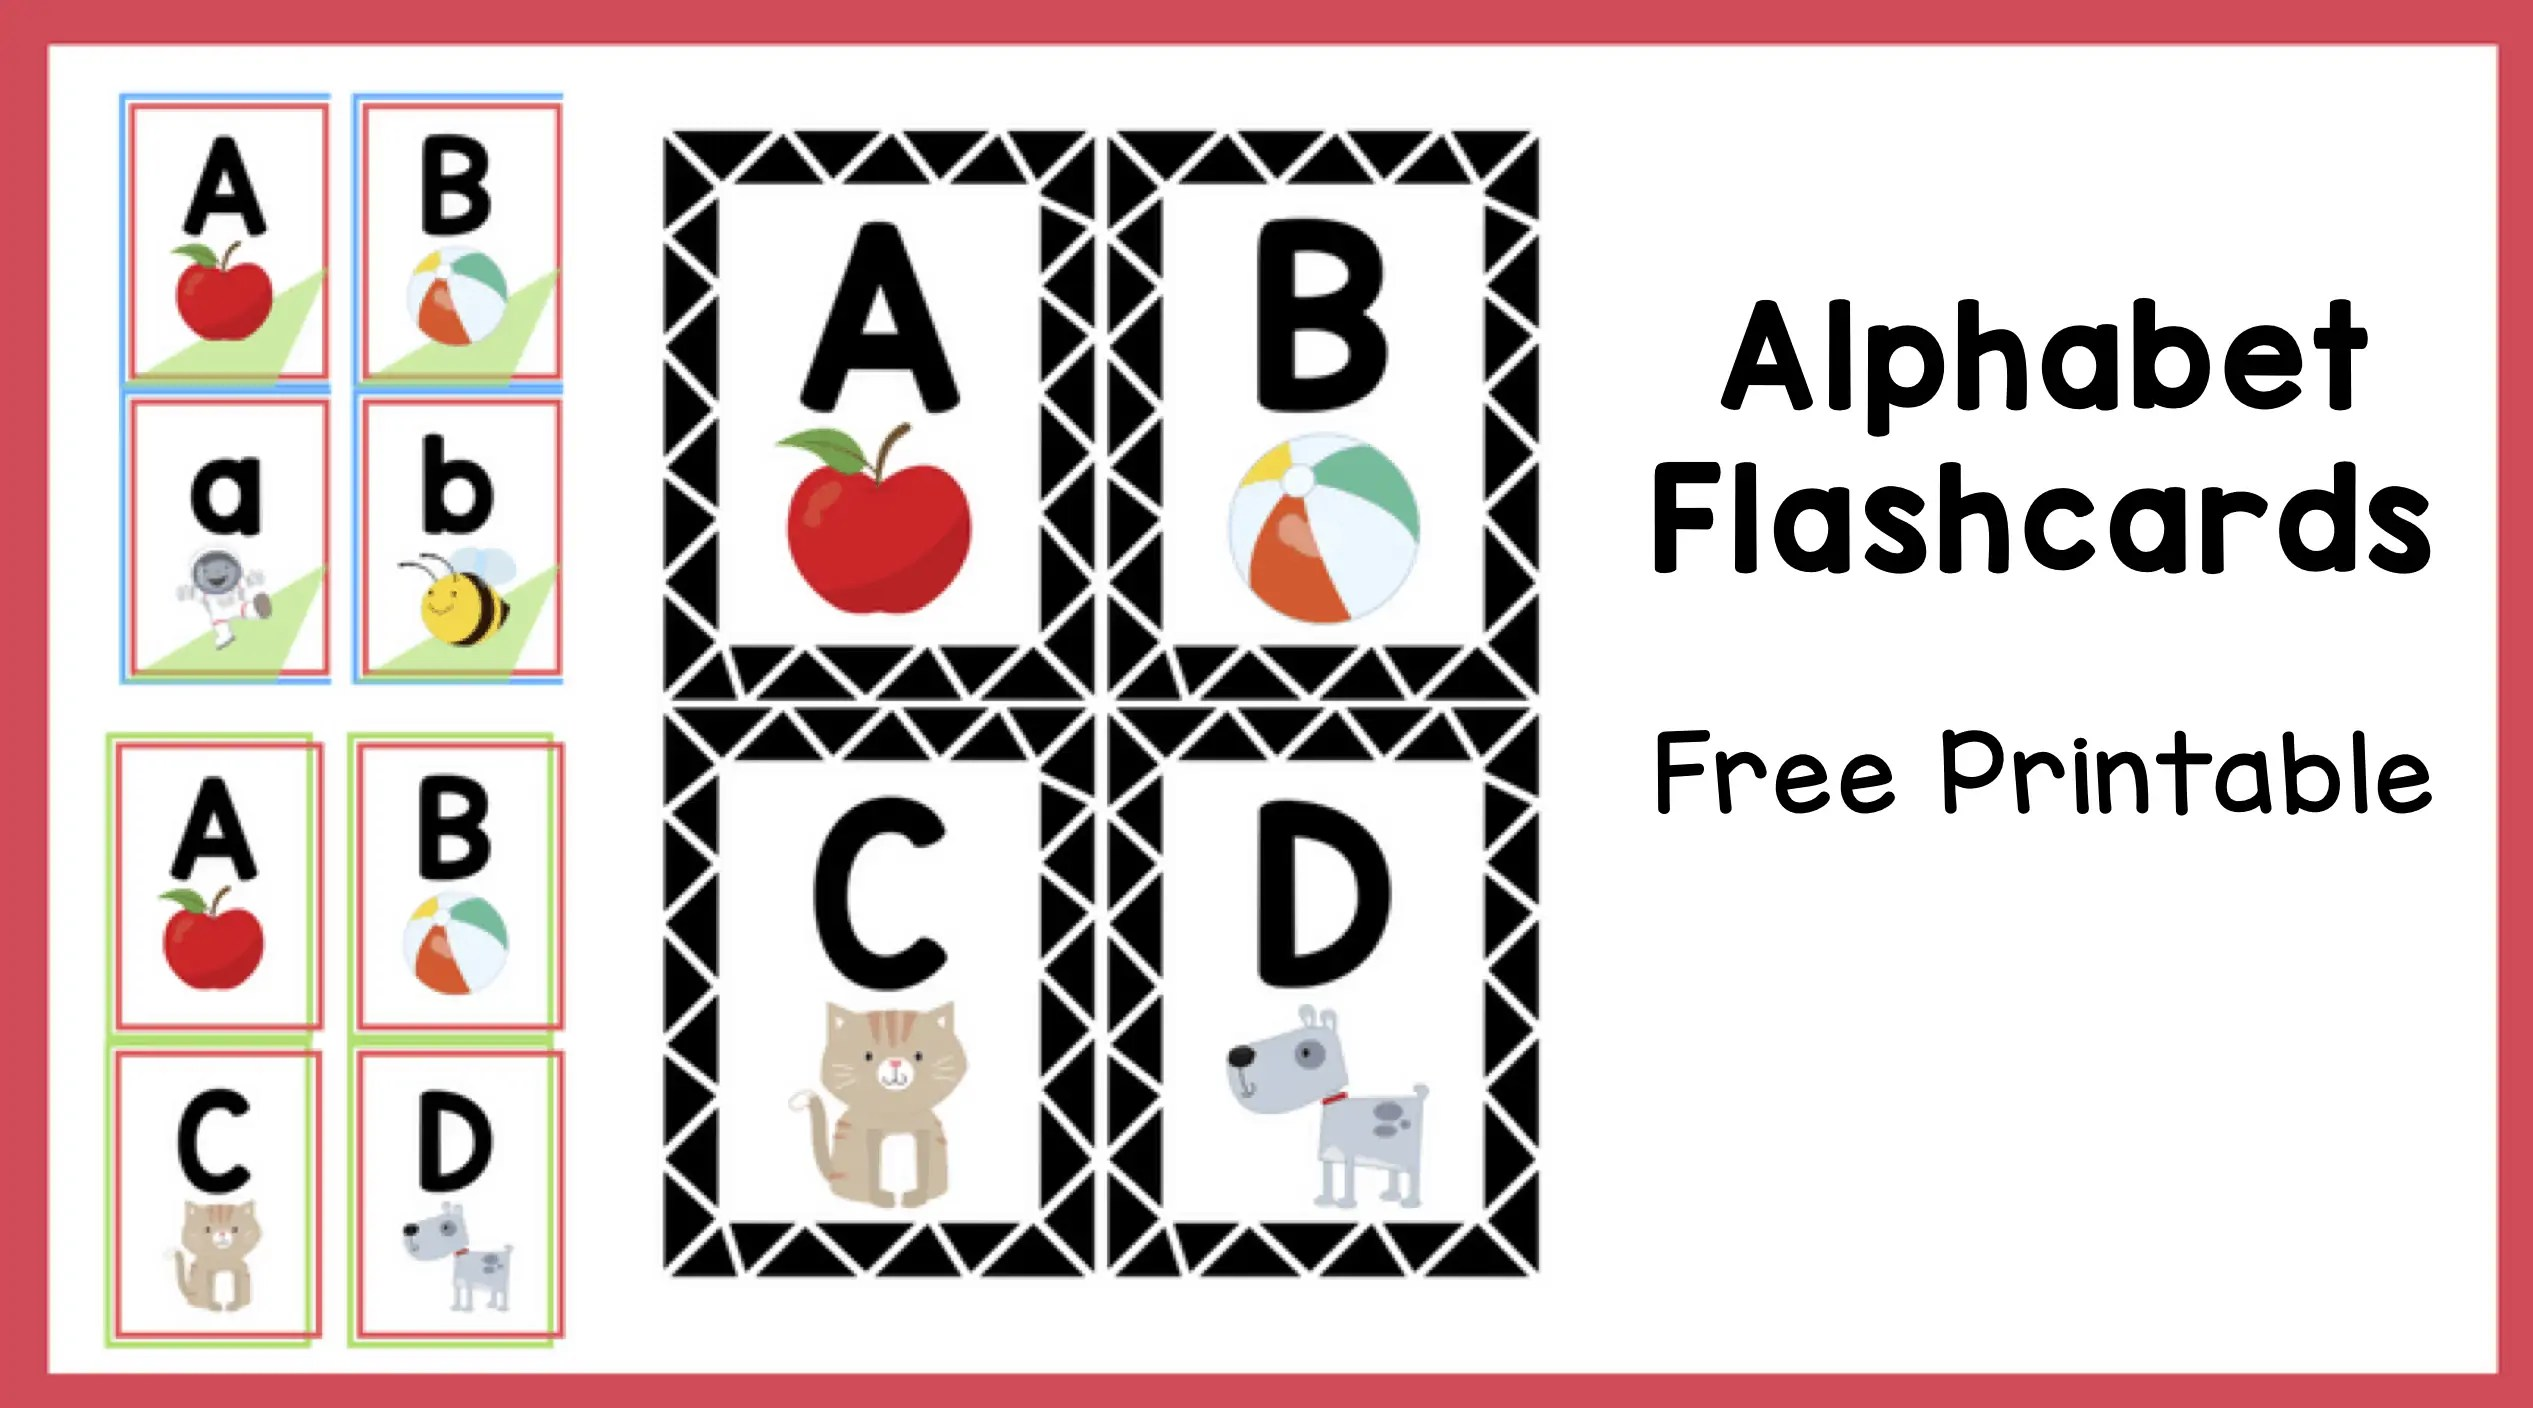 graphic about Alphabet Cards Printable identify Alphabet Flashcards Totally free Printable - The Education Aunt